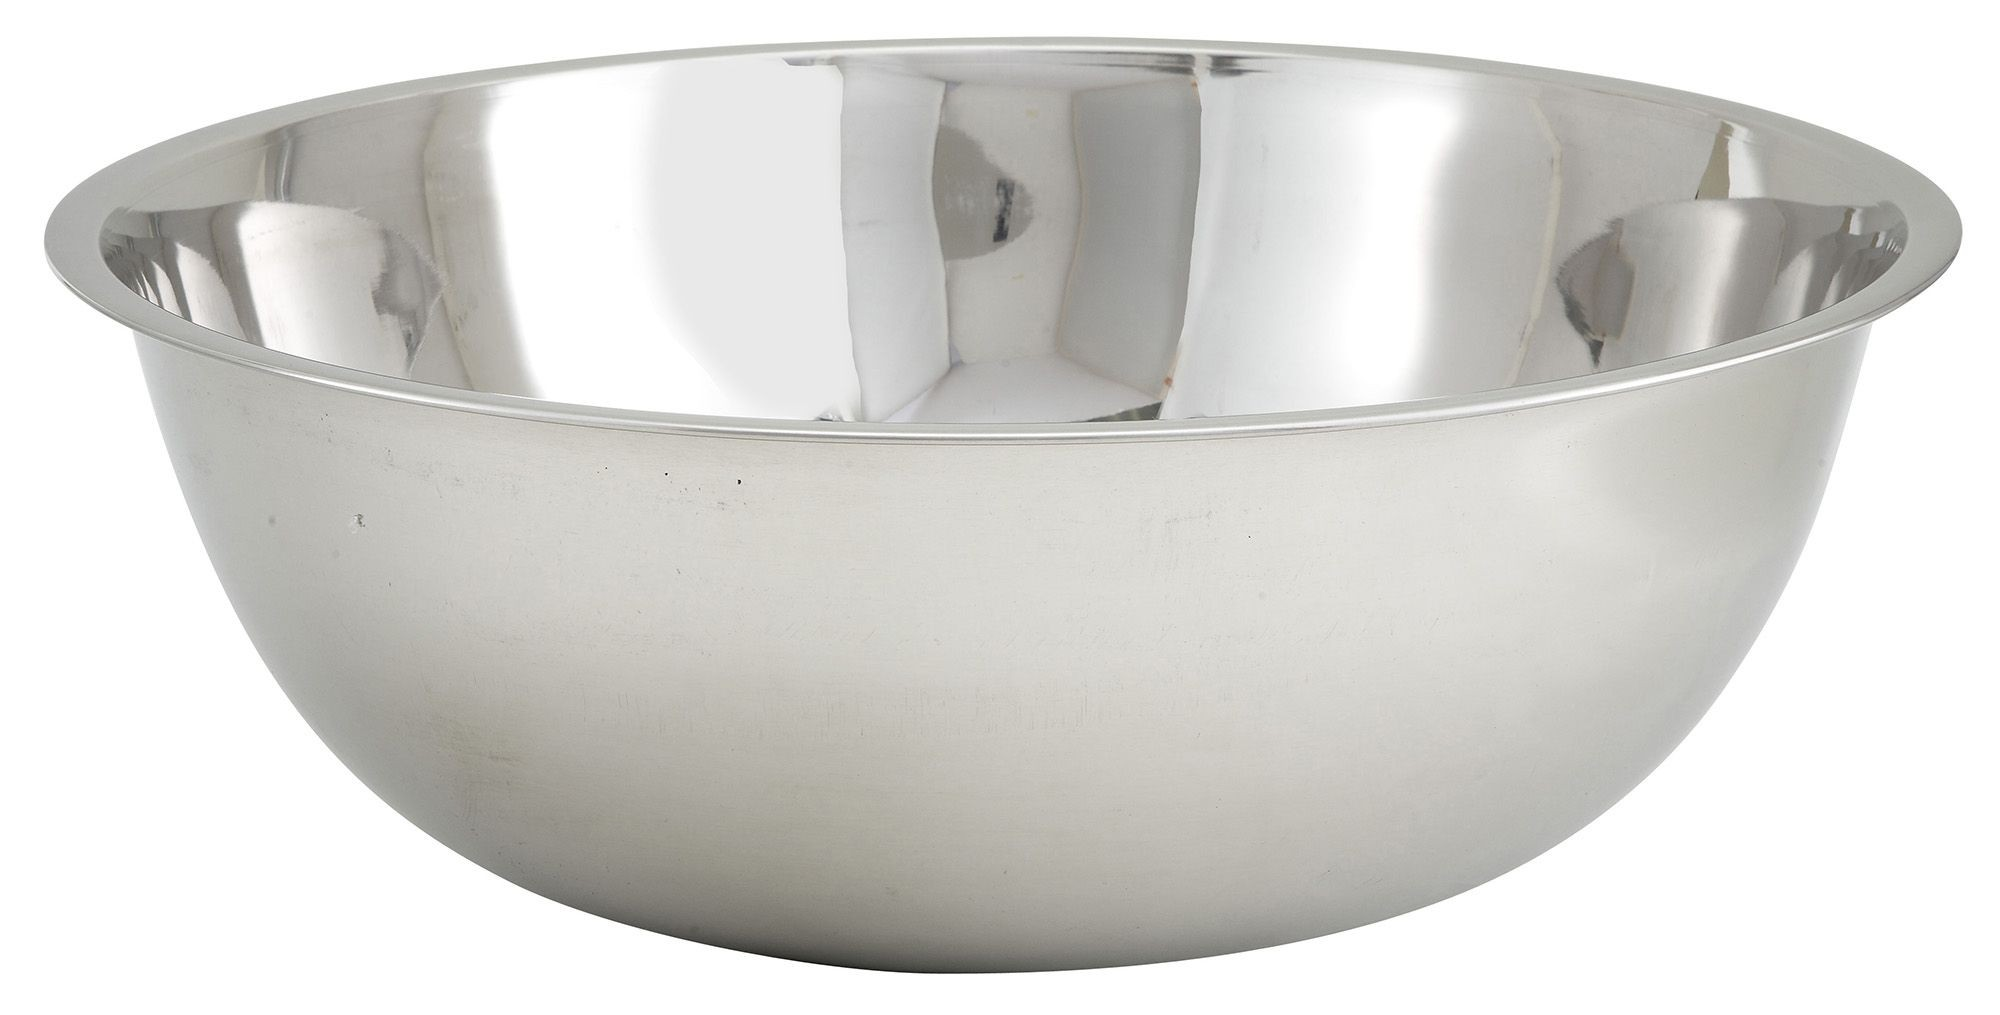 Winco MXB-2000Q Stainless Steel 20 Qt. Mixing Bowl